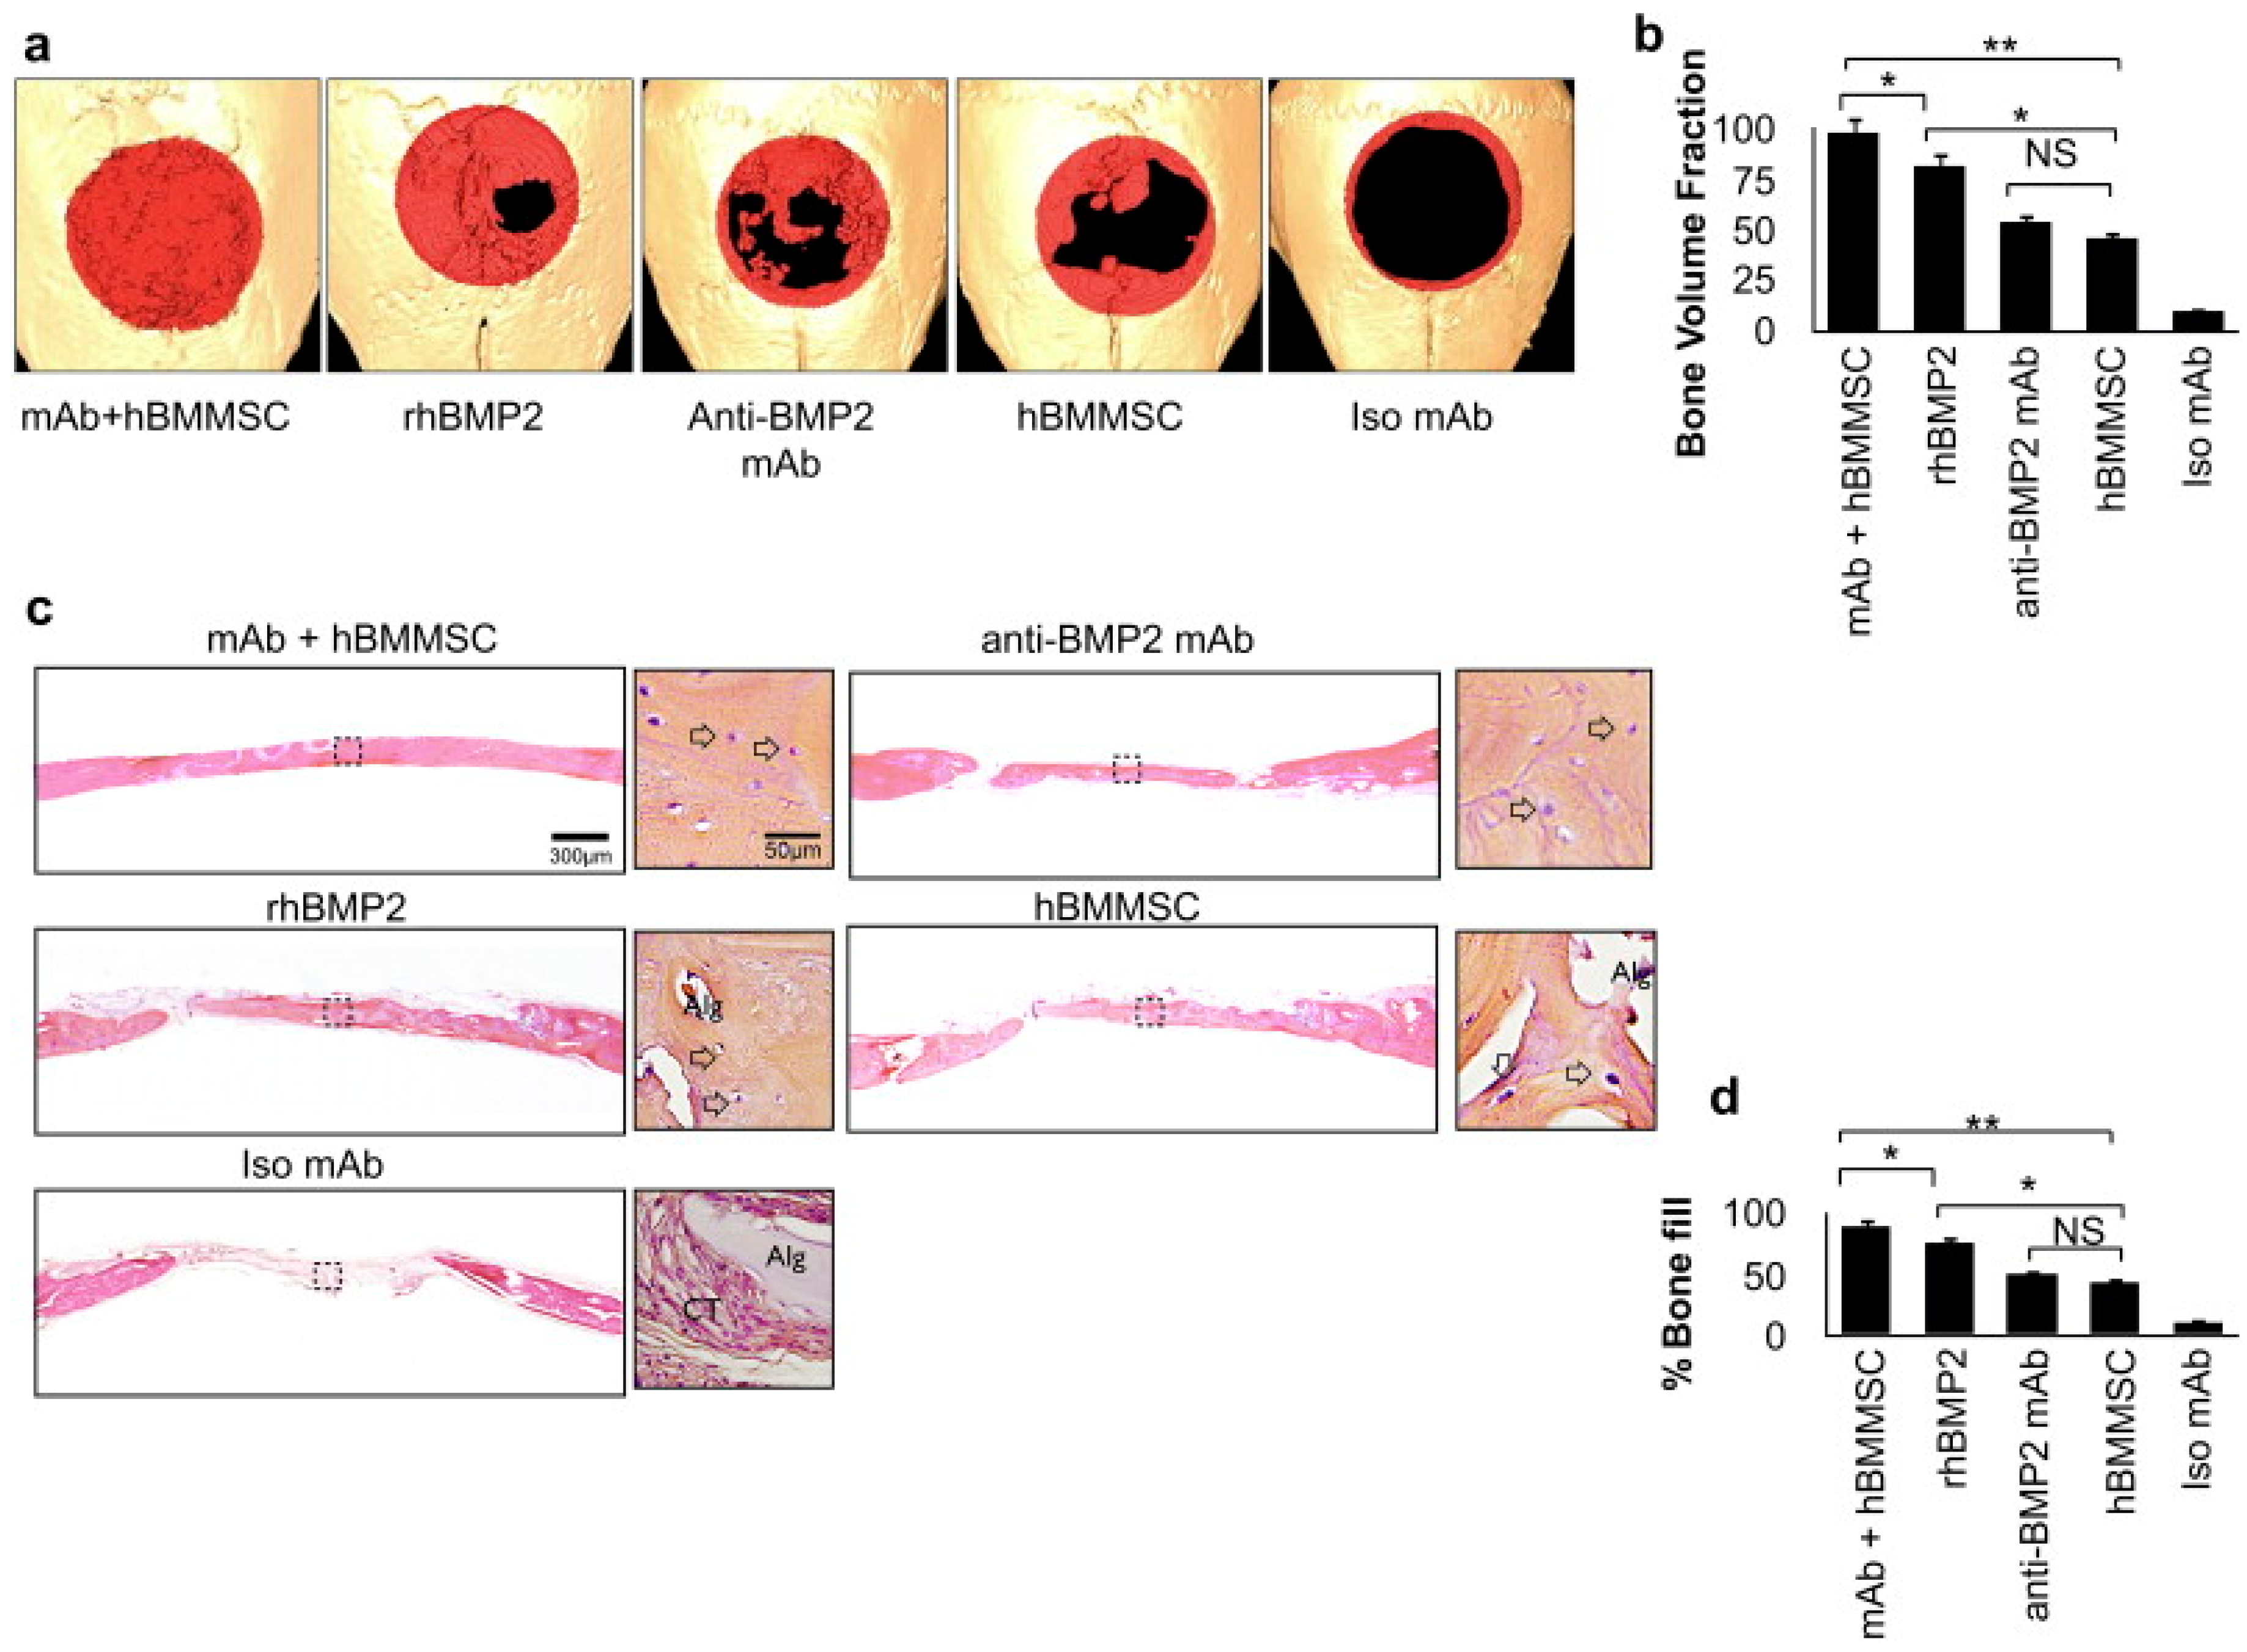 history of injectable tissue engineering With a gelling agent commonly used in preparing pastries, researchers from the inspired nanomaterials and tissue engineering laboratory have successfully fabricated an injectable bandage to stop bleeding and promote wound healing.